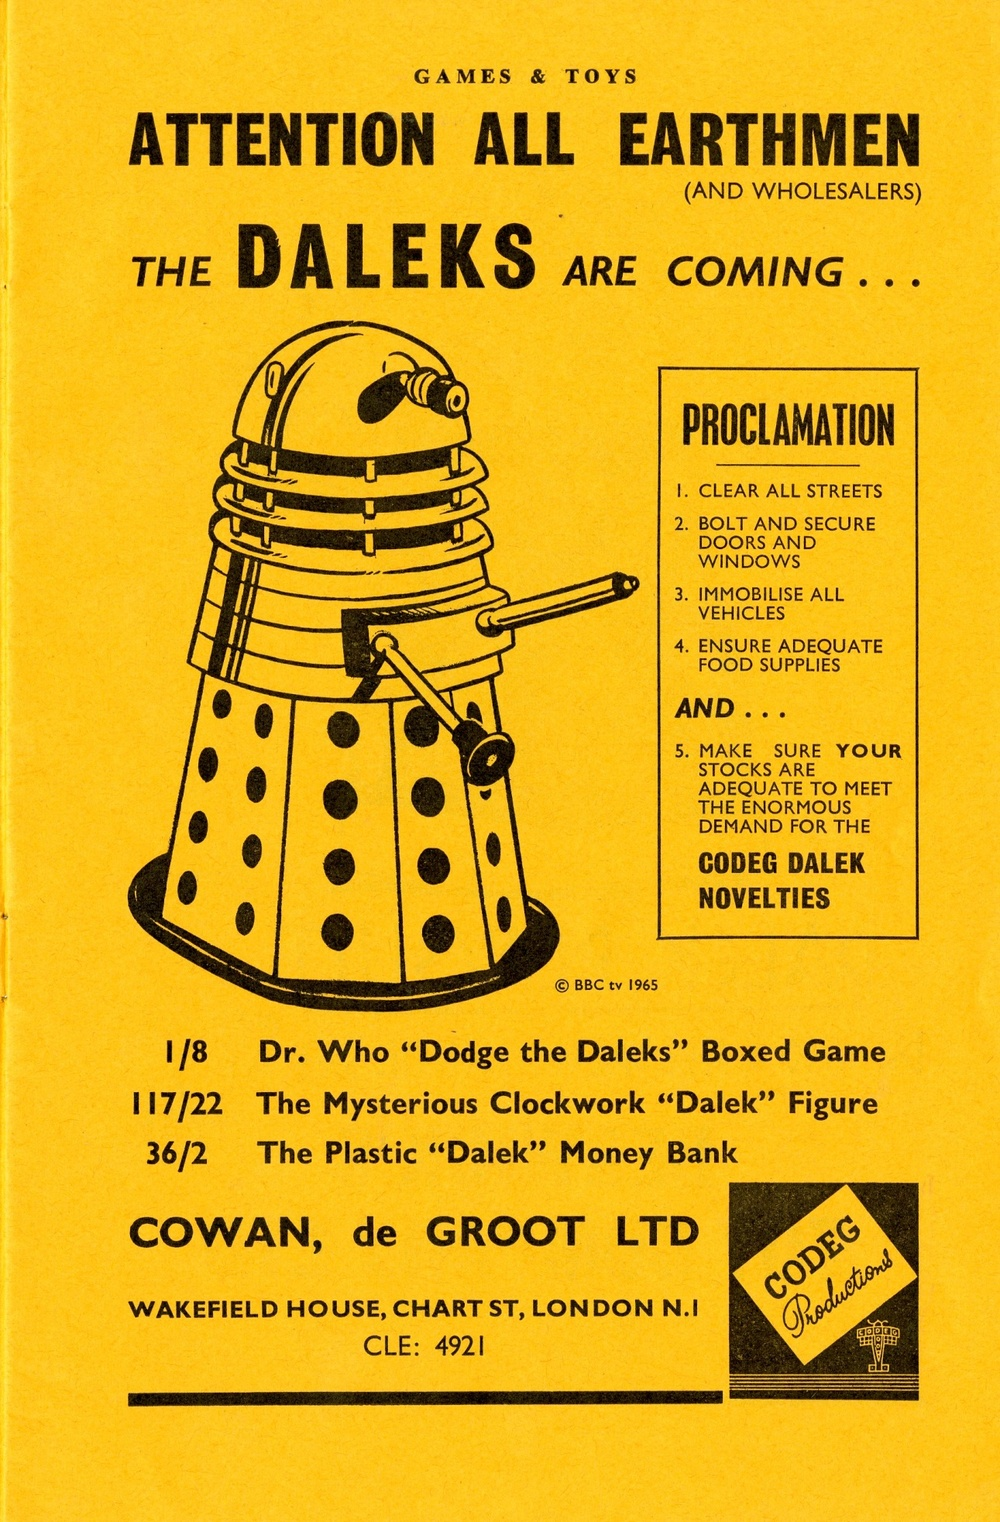 Ad. for the Cowan, de Groot Codeg Dalek toys from the Supplement to Games and Toys, September 1965